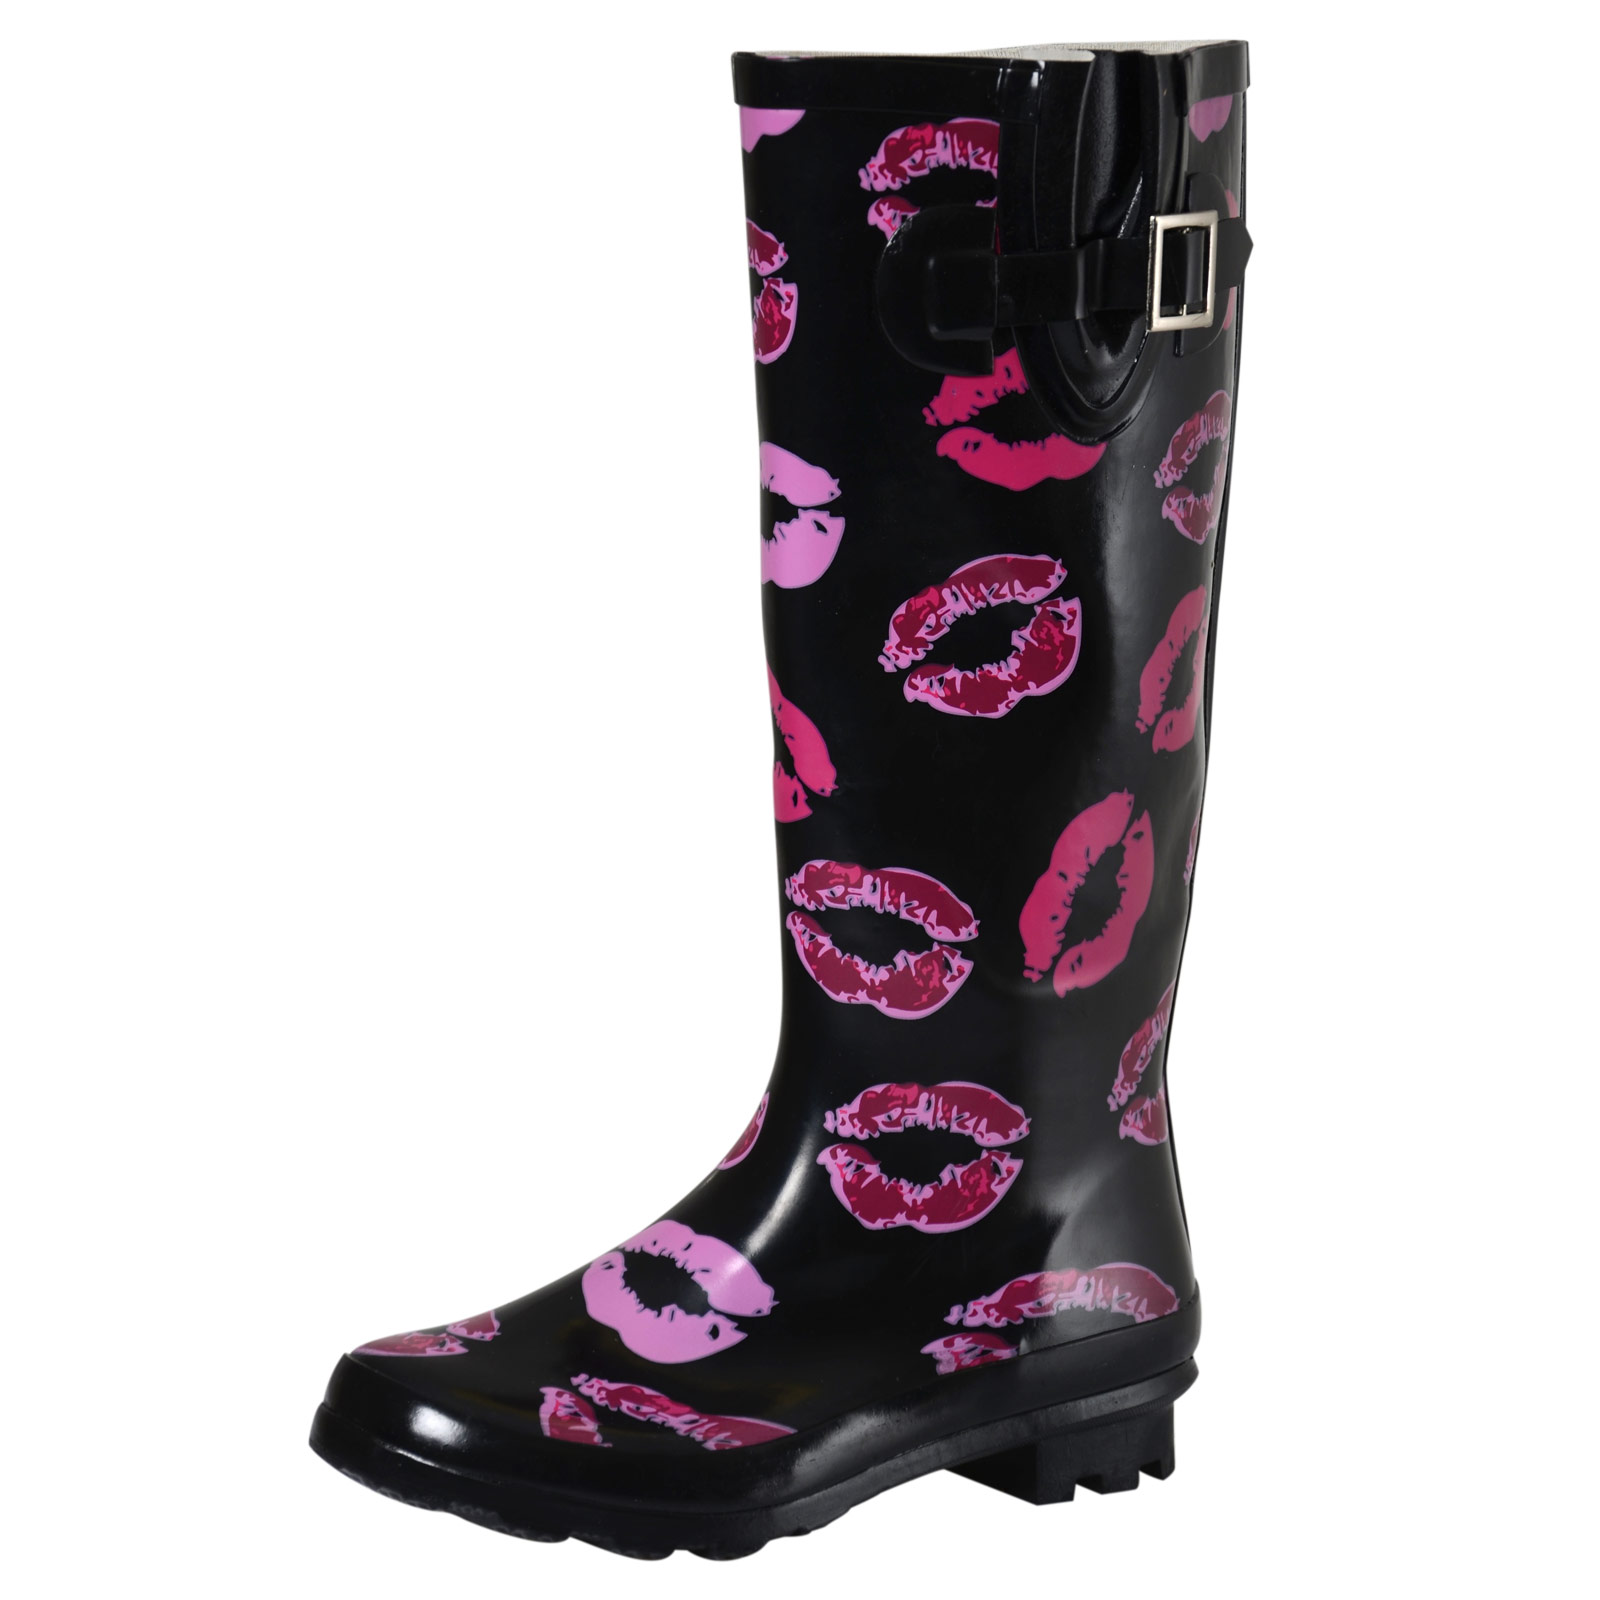 Find great deals on eBay for wellington rain boots. Shop with confidence.